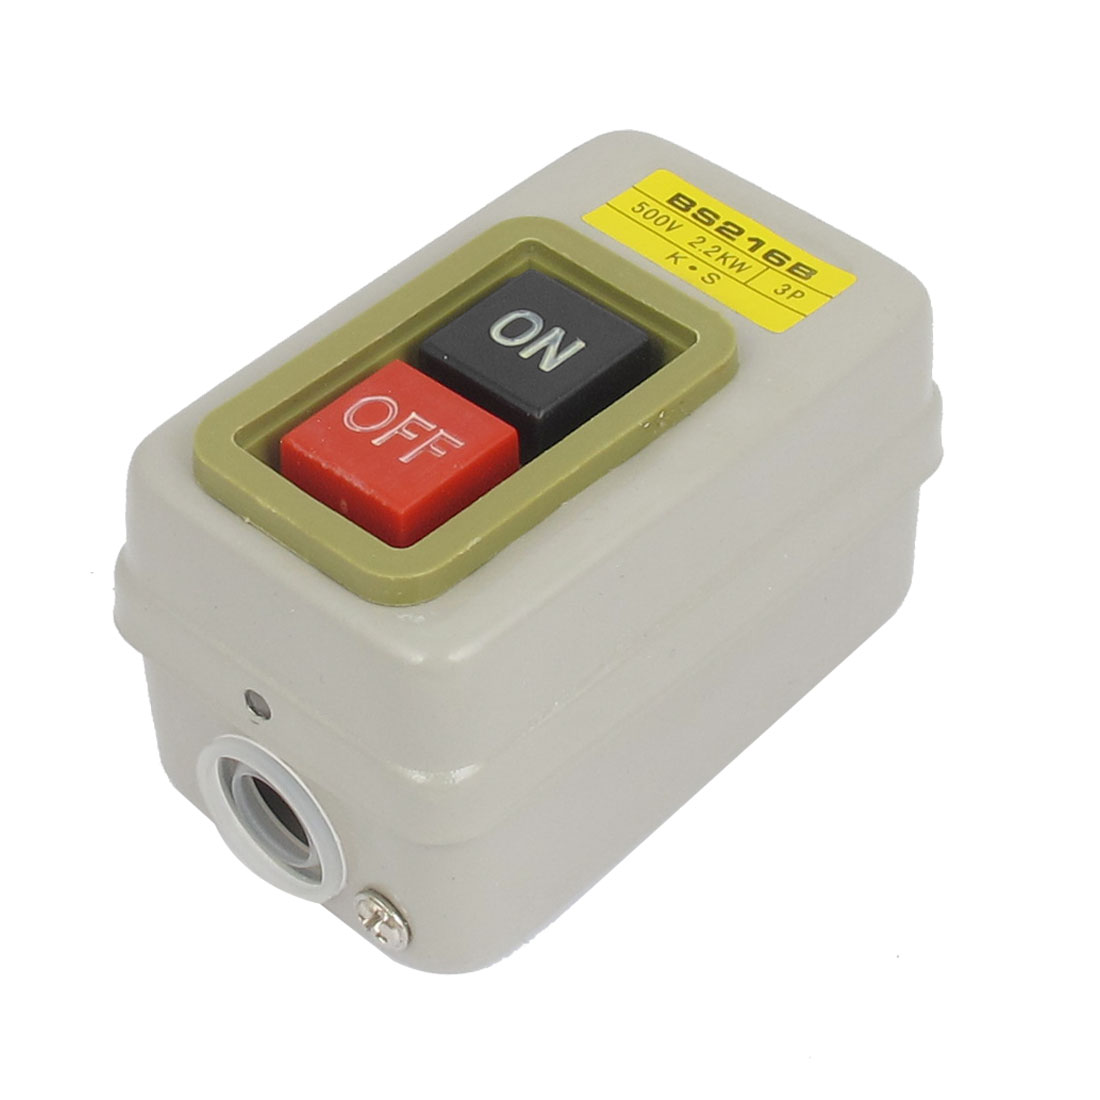 BS216B 3P 500V 2.2KW 6 Screw Terminal Self Locking ON/OFF Control SPST Power Push Button Pushbutton Switch